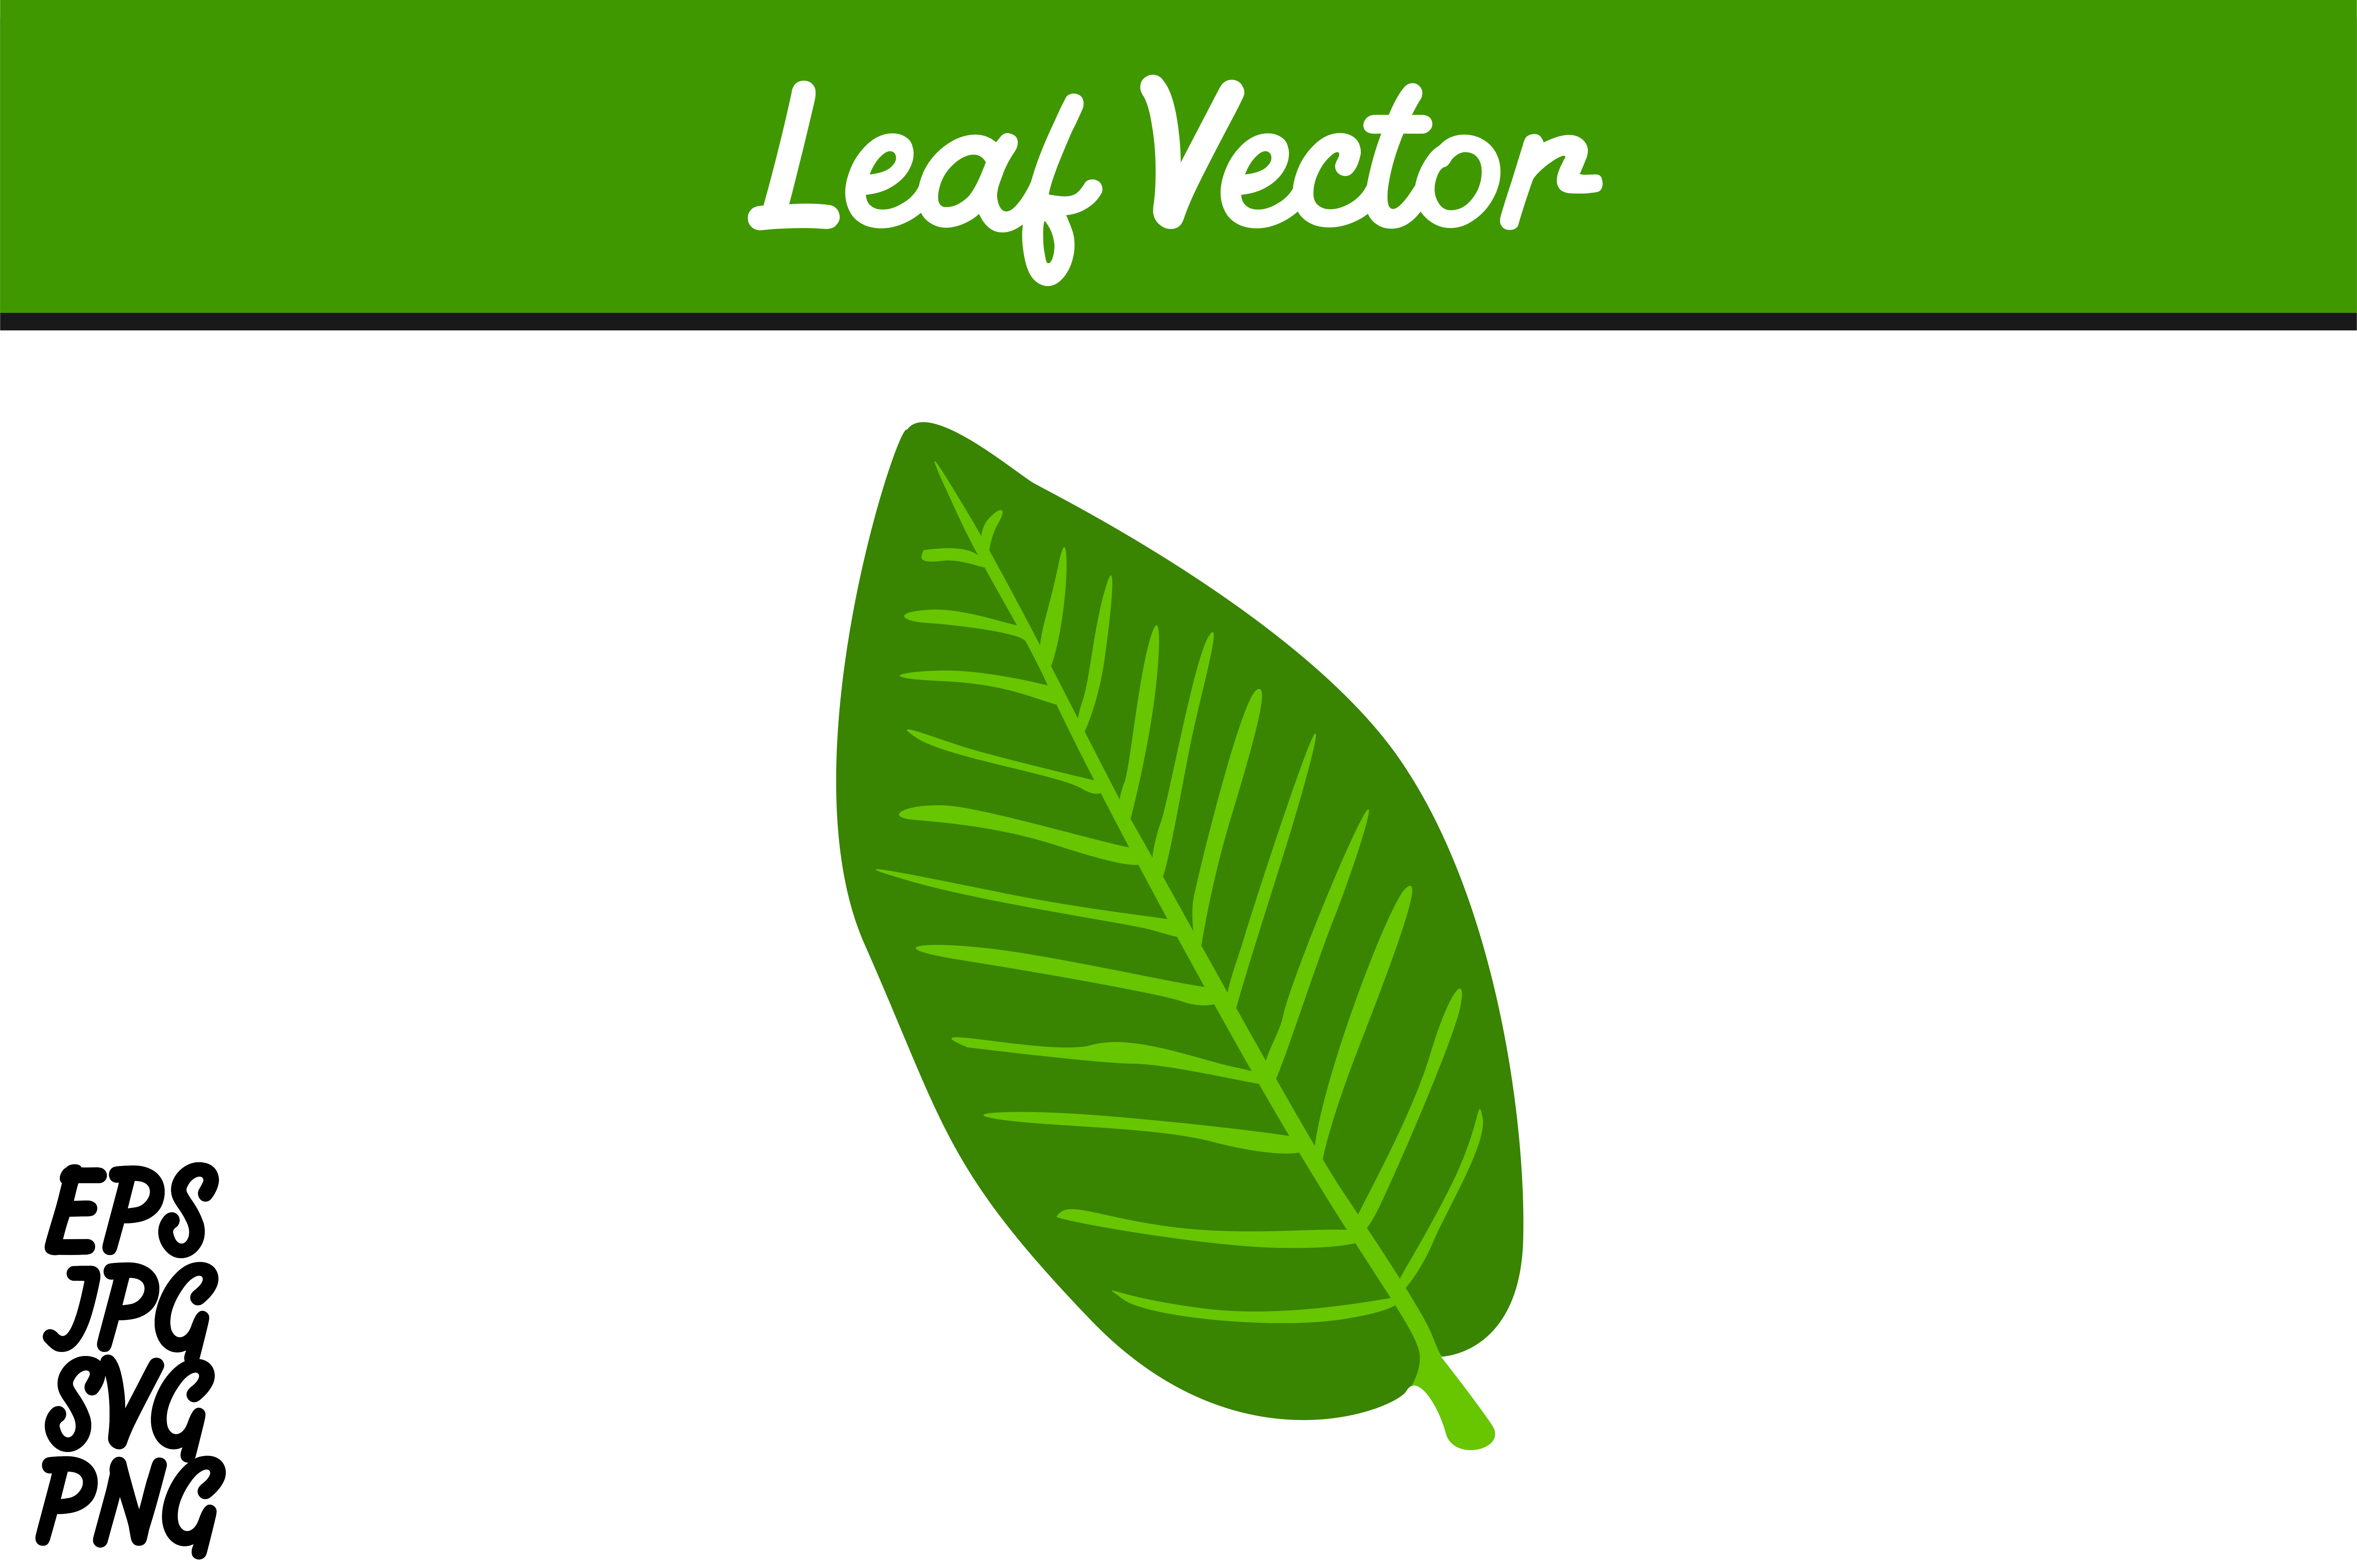 Download Free Green Leaf Svg Vector Image Graphic By Arief Sapta Adjie for Cricut Explore, Silhouette and other cutting machines.